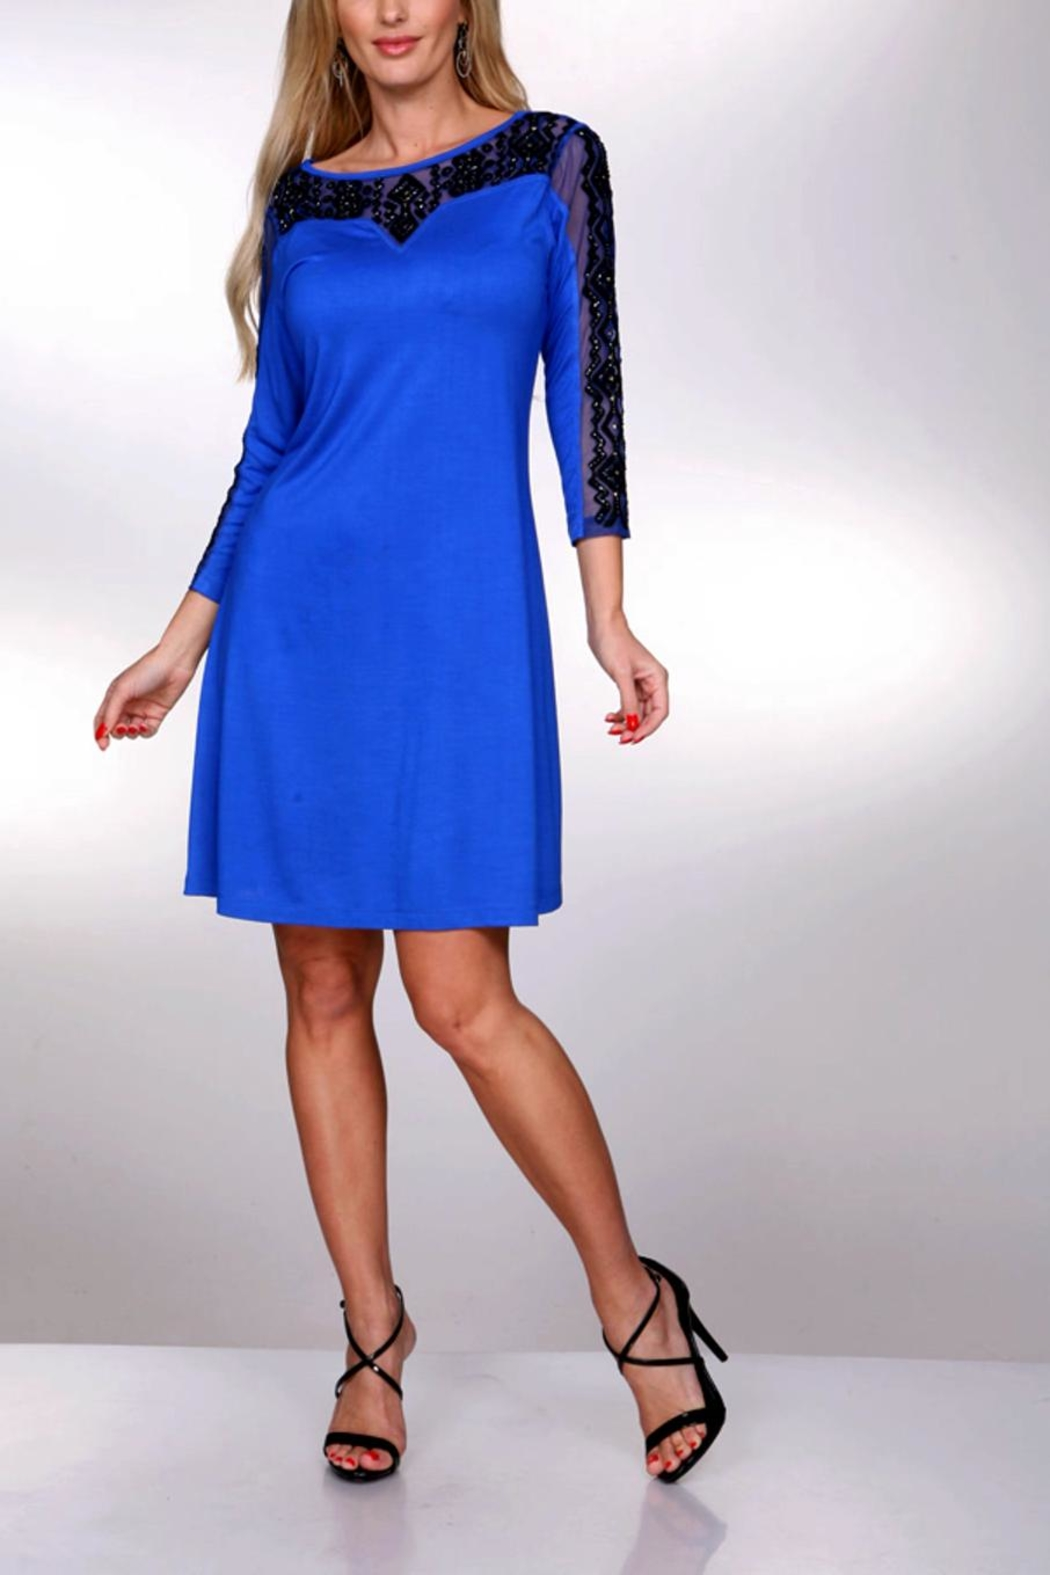 Krista Lee Blue Emb. Dress - Main Image